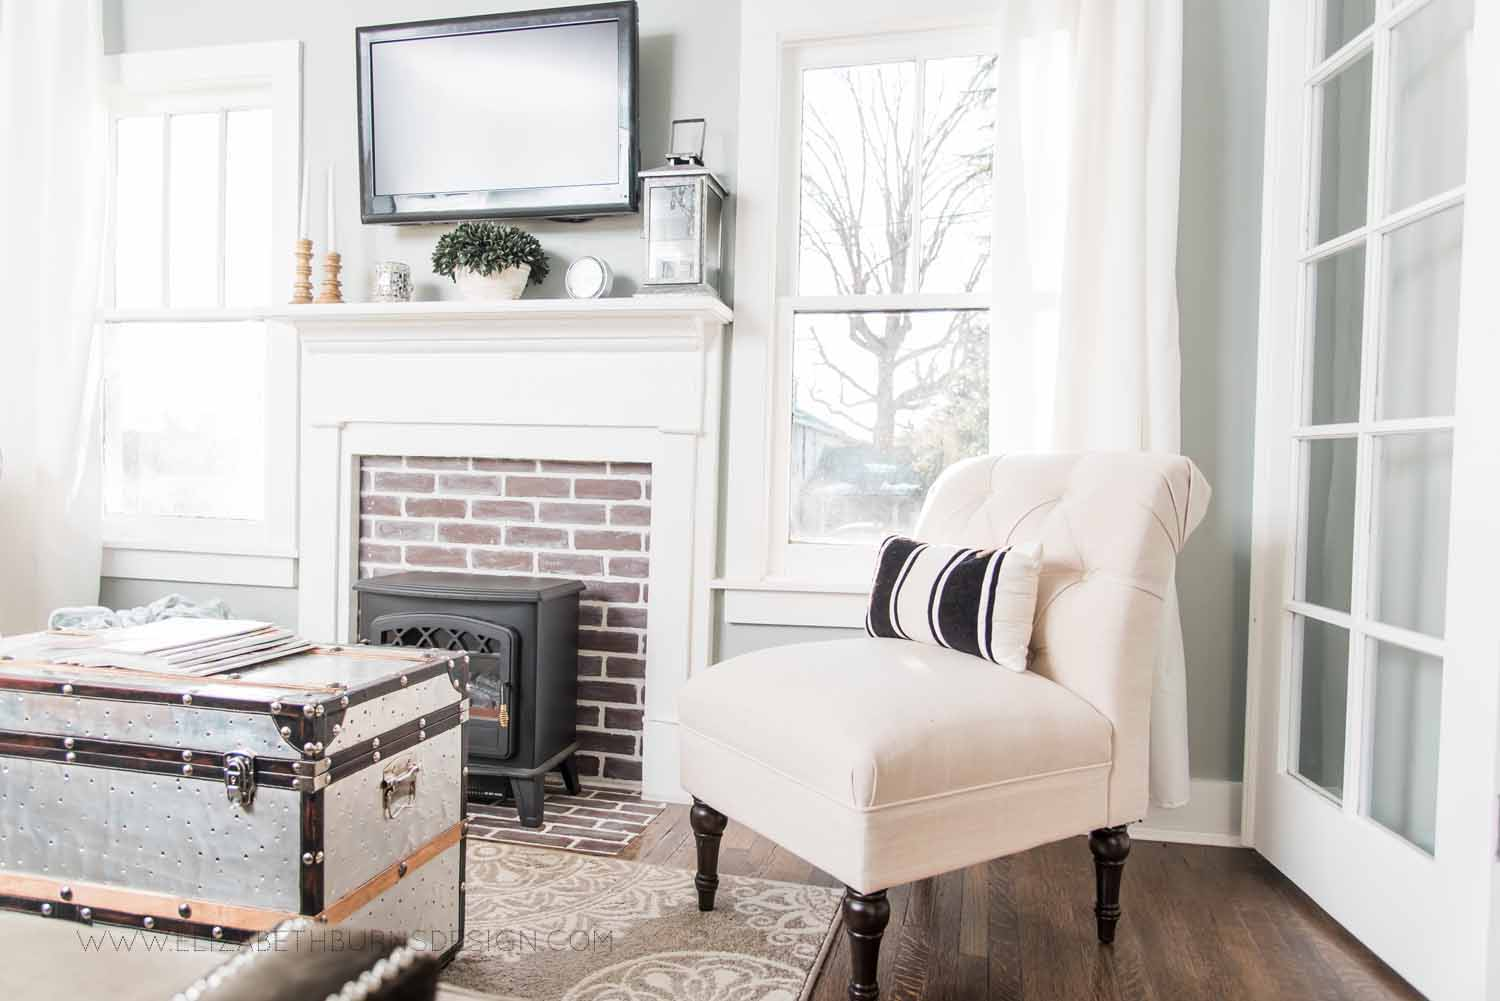 Elizabeth Burns Design Raleigh Interior Designer  Farmhouse Fixer Upper Cottage Renovation, Sherwin Williams Magnetic Gray SW 7058 Traditional Living Room (5).jpg